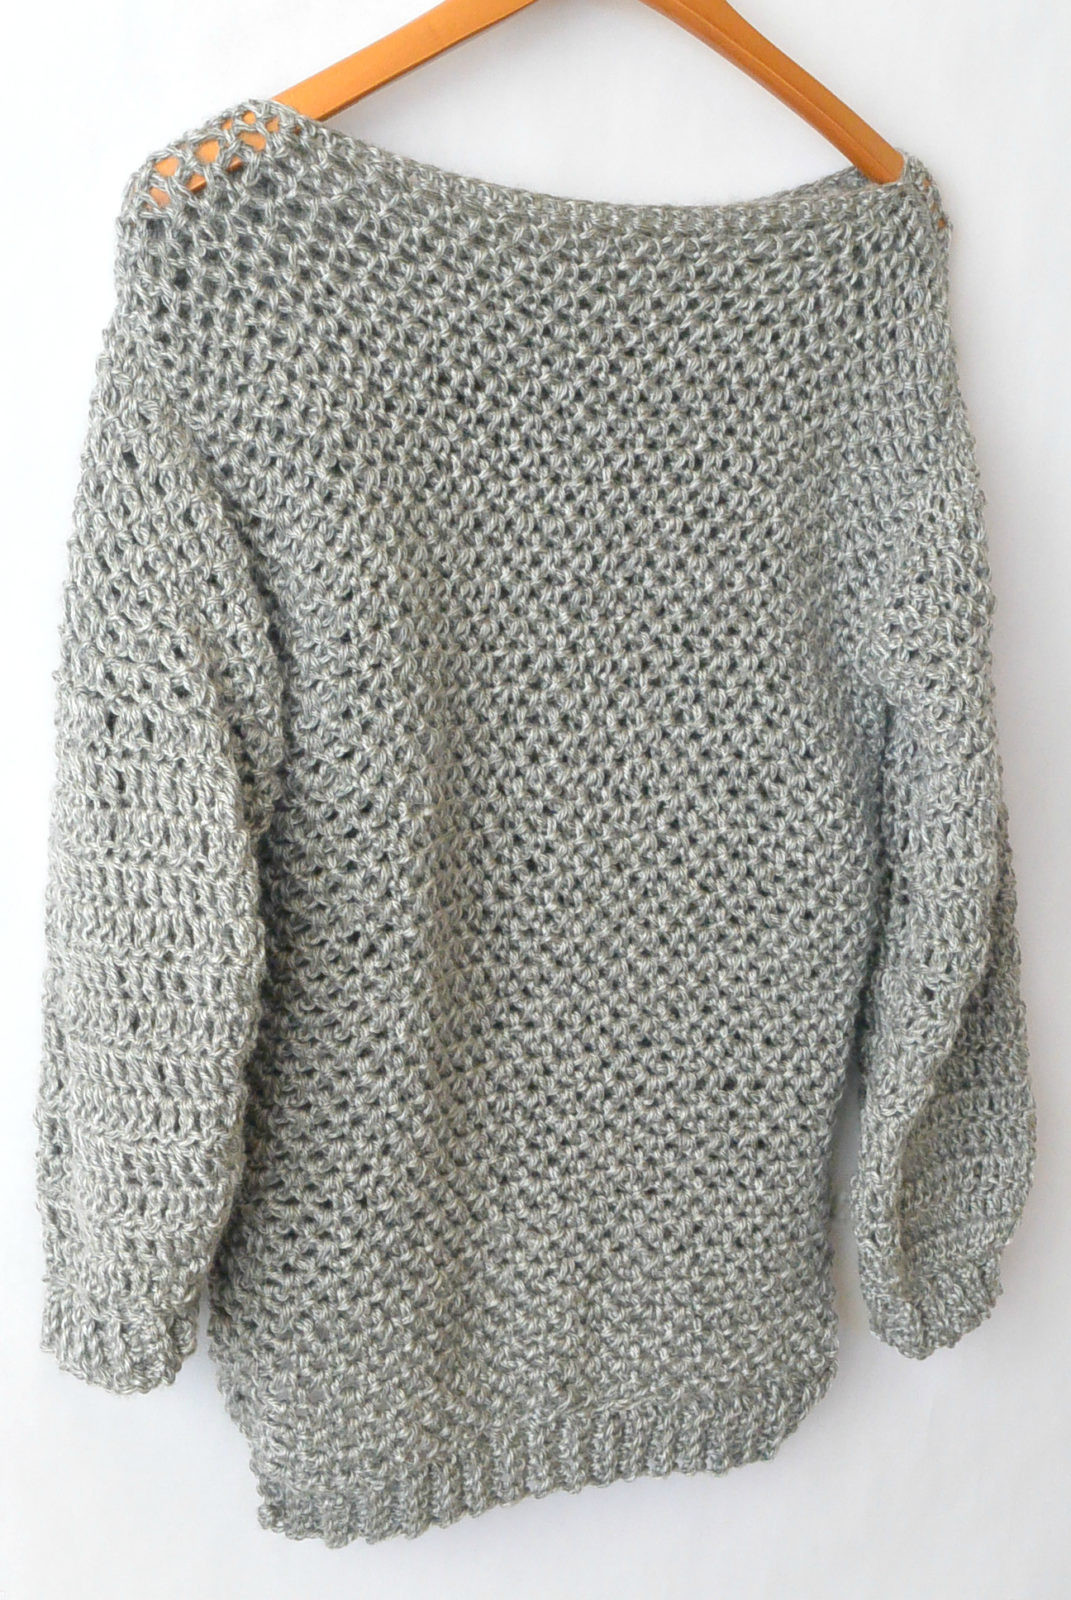 How To Make An Easy Crocheted Sweater Knit Like – Mama